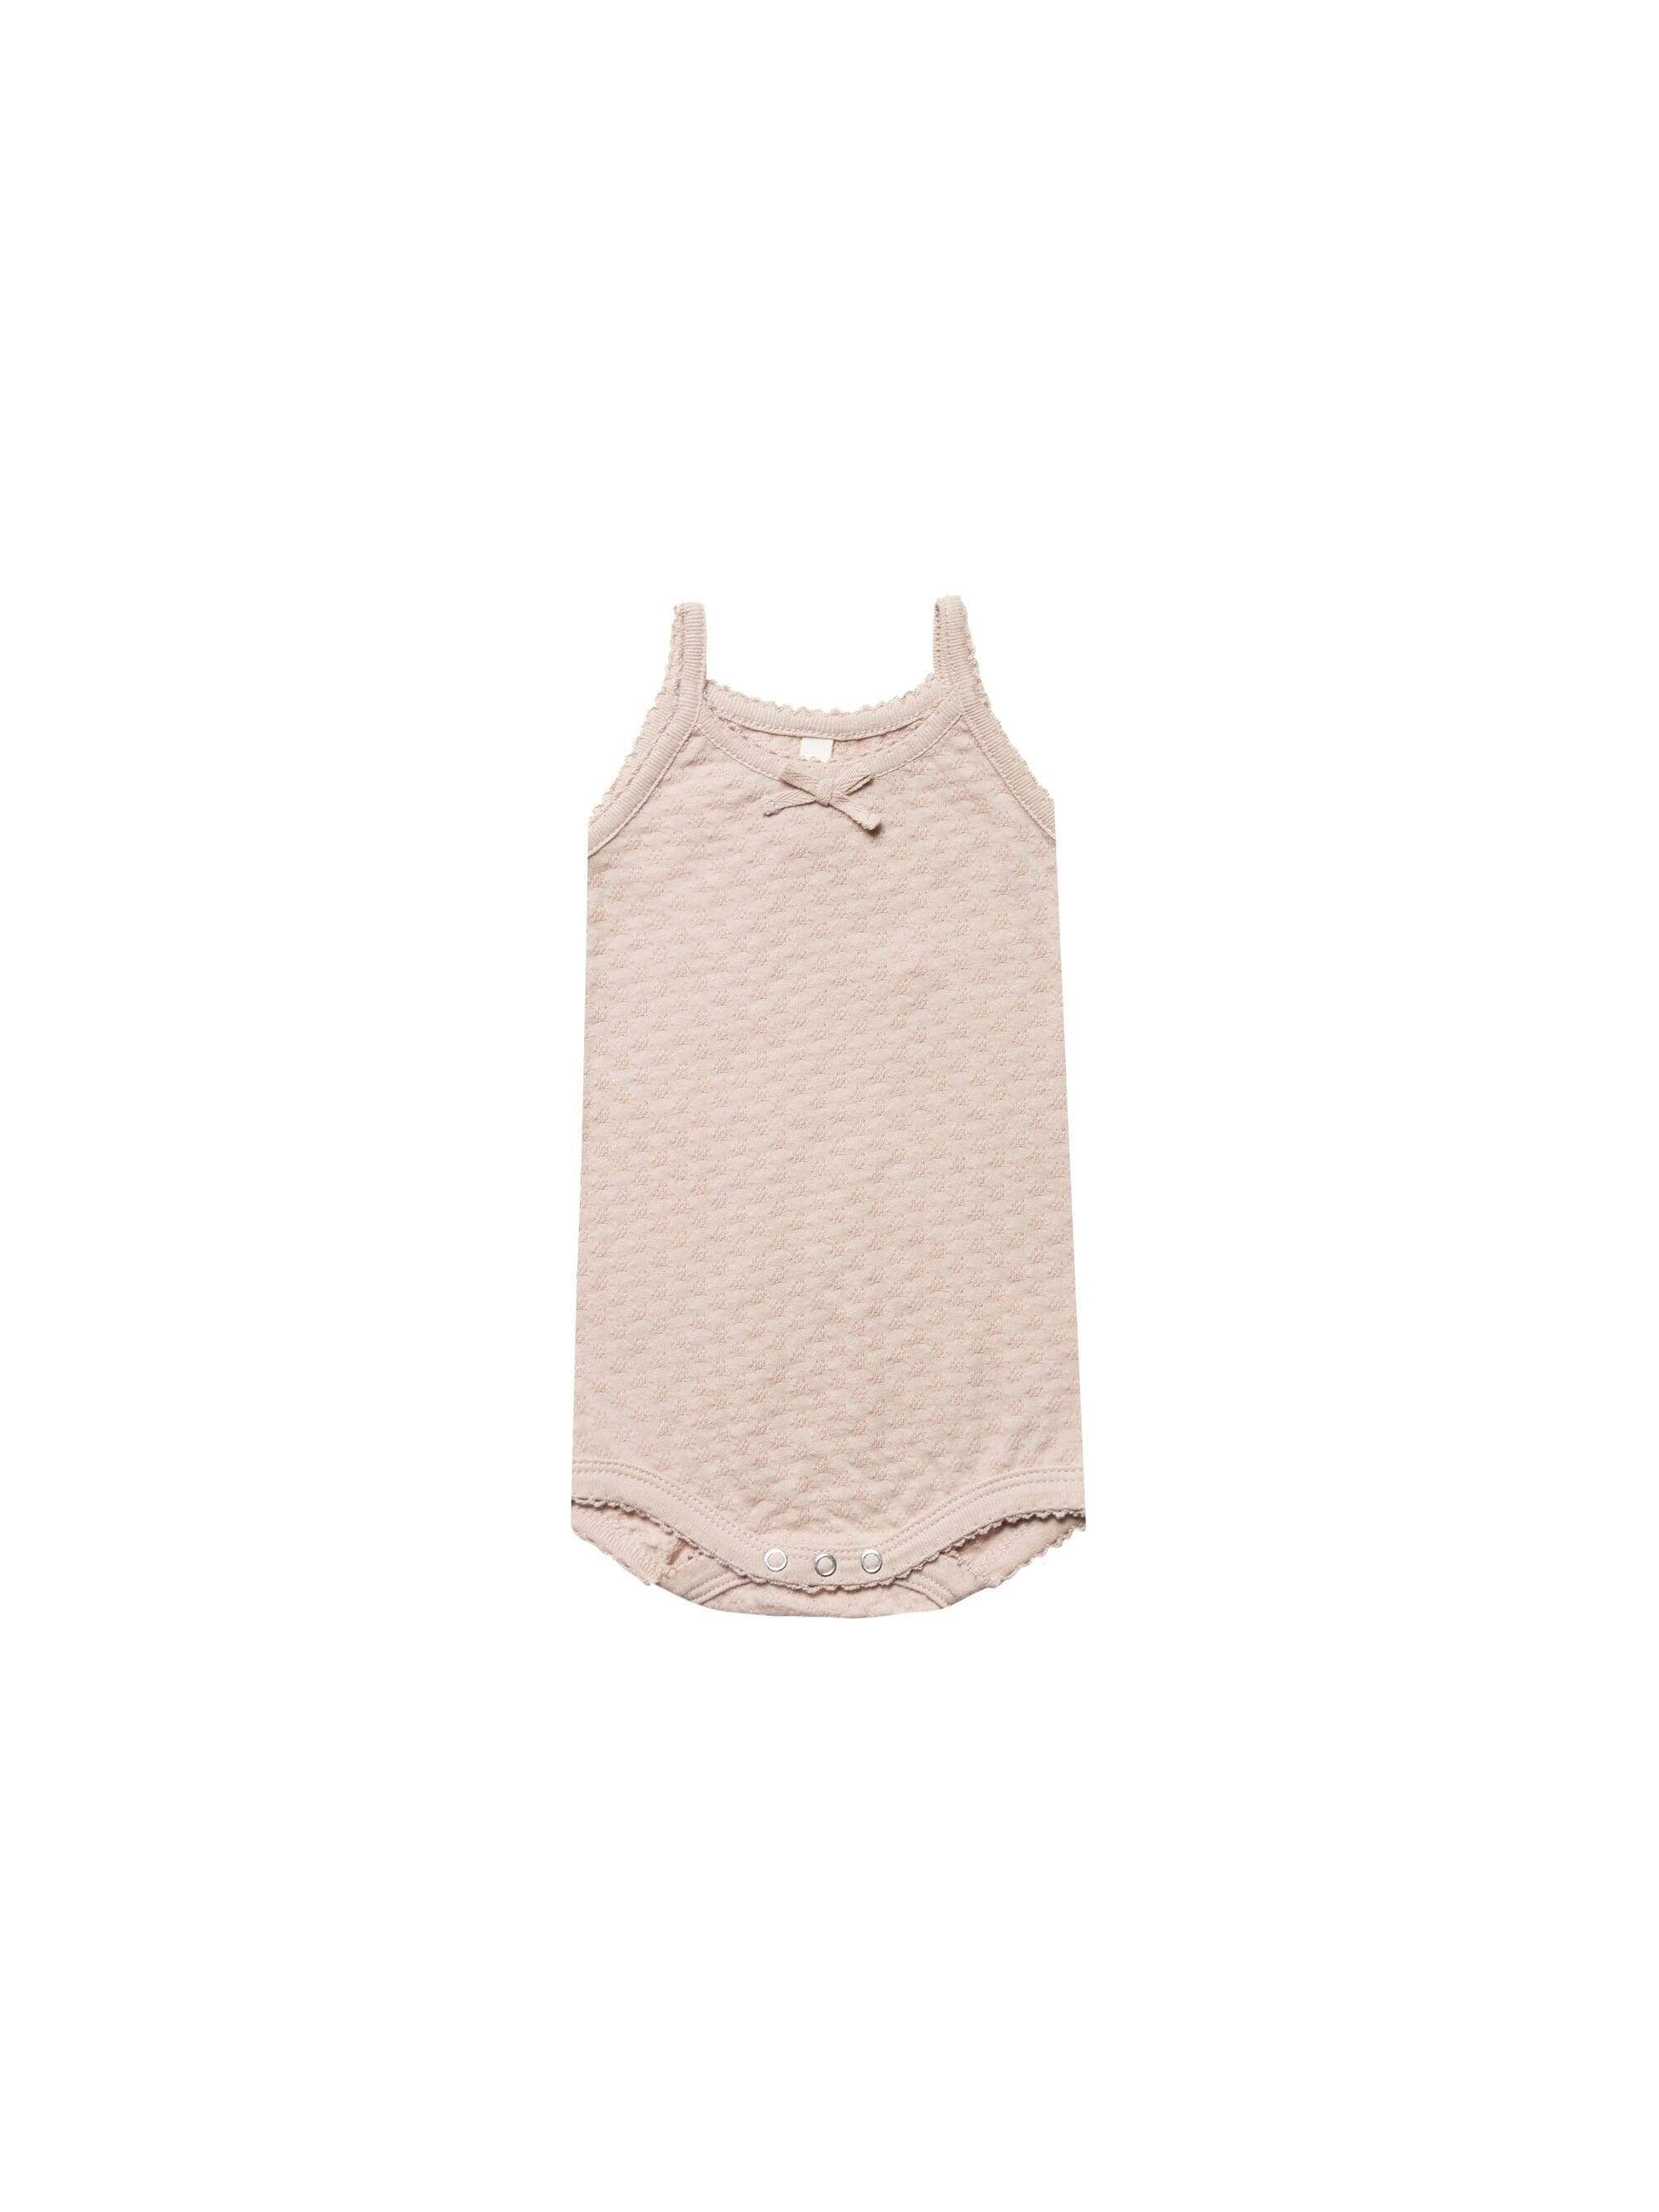 Quincy Mae Rompers 0-3 / Rose Quincy Mae Pointelle Onesie Tank